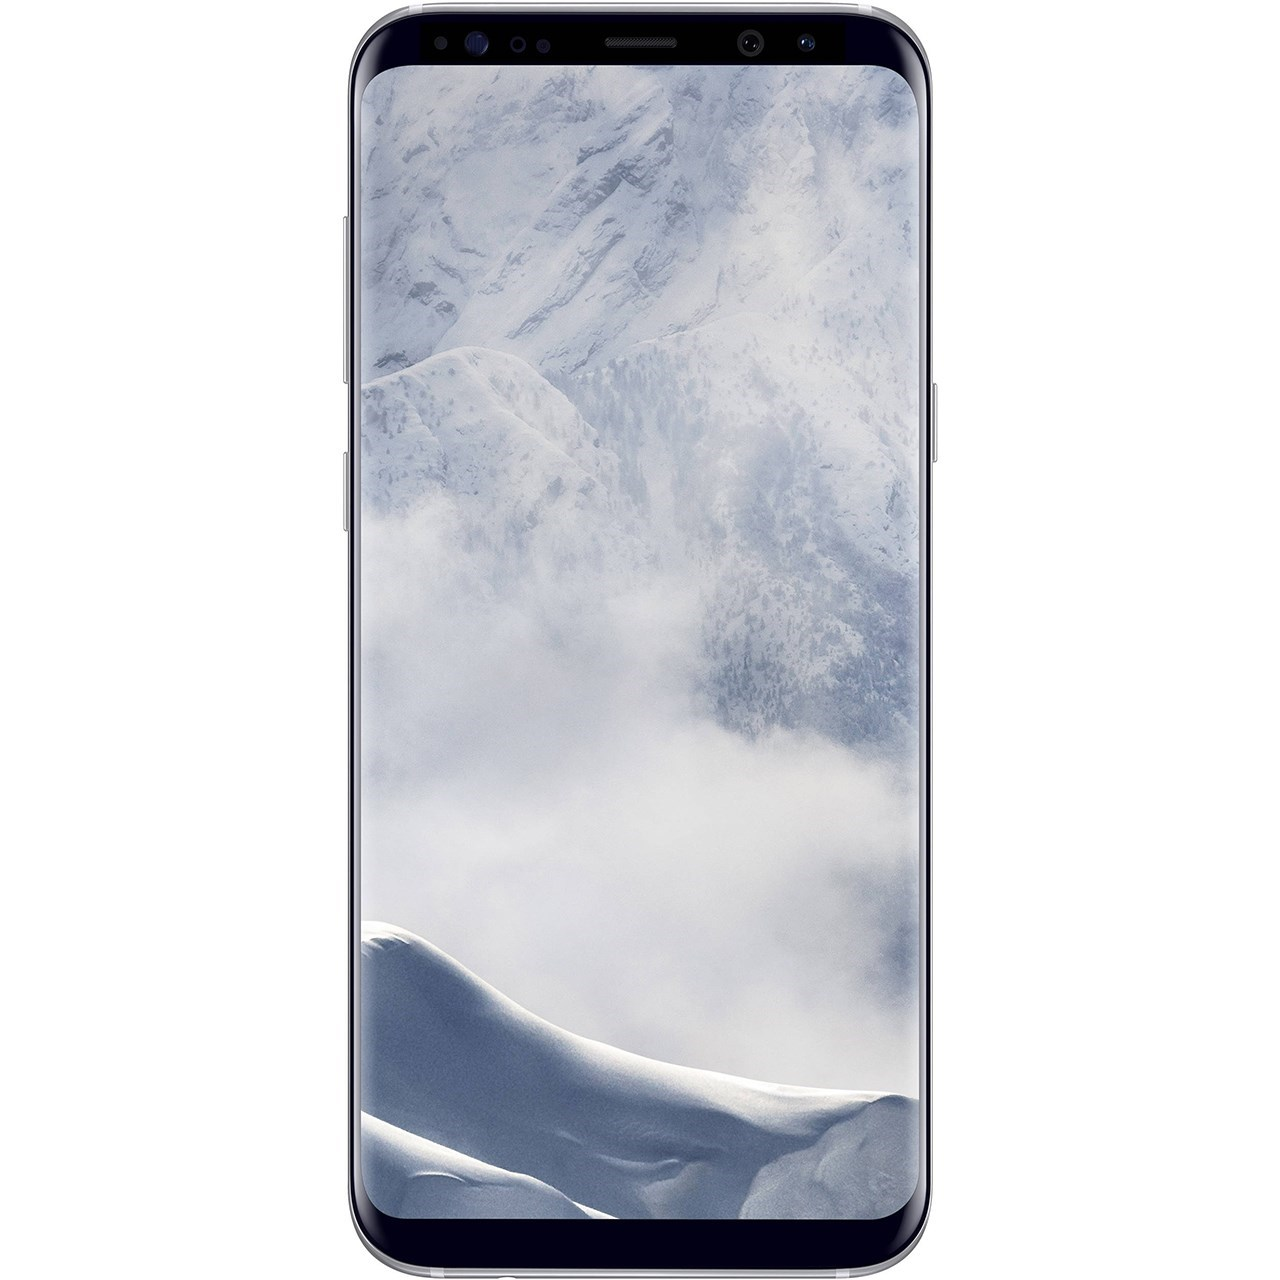 "<span style="""">گوشی موبایل سامسونگ مدل Galaxy S8 Plus SM-G955FD دو سیم کارت                             Samsung Galaxy S8 Plus SM-G955FD Dual SIM Mobile Phone</span>"